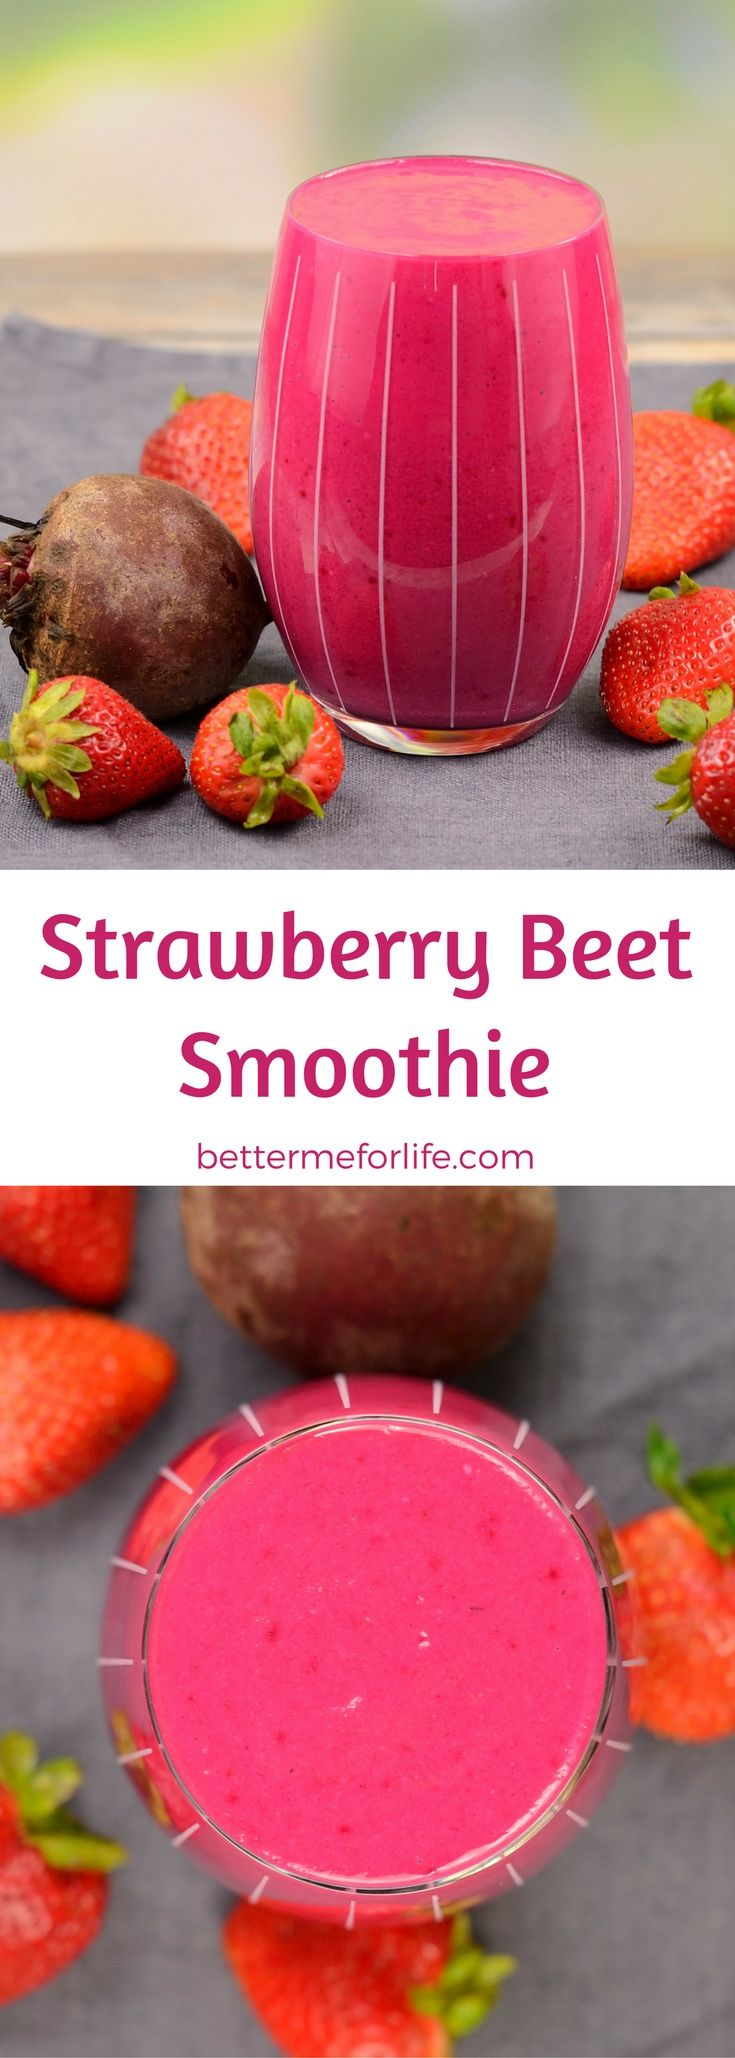 Packed with vitamin C and fiber, this strawberry beet smoothie is a filling weight loss smoothie. It's the perfect blend of sweet and savory flavors. Find the recipe on BetterMeforLife.com | strawberry smoothie | smoothie recipes | smoothies | healthy smoothies | delicious smoothies | smoothies for weight loss | smoothie | smoothie recipes | smoothie recipes weight loss | smoothie recipes diet #smoothies #smoothierecipes #smoothie